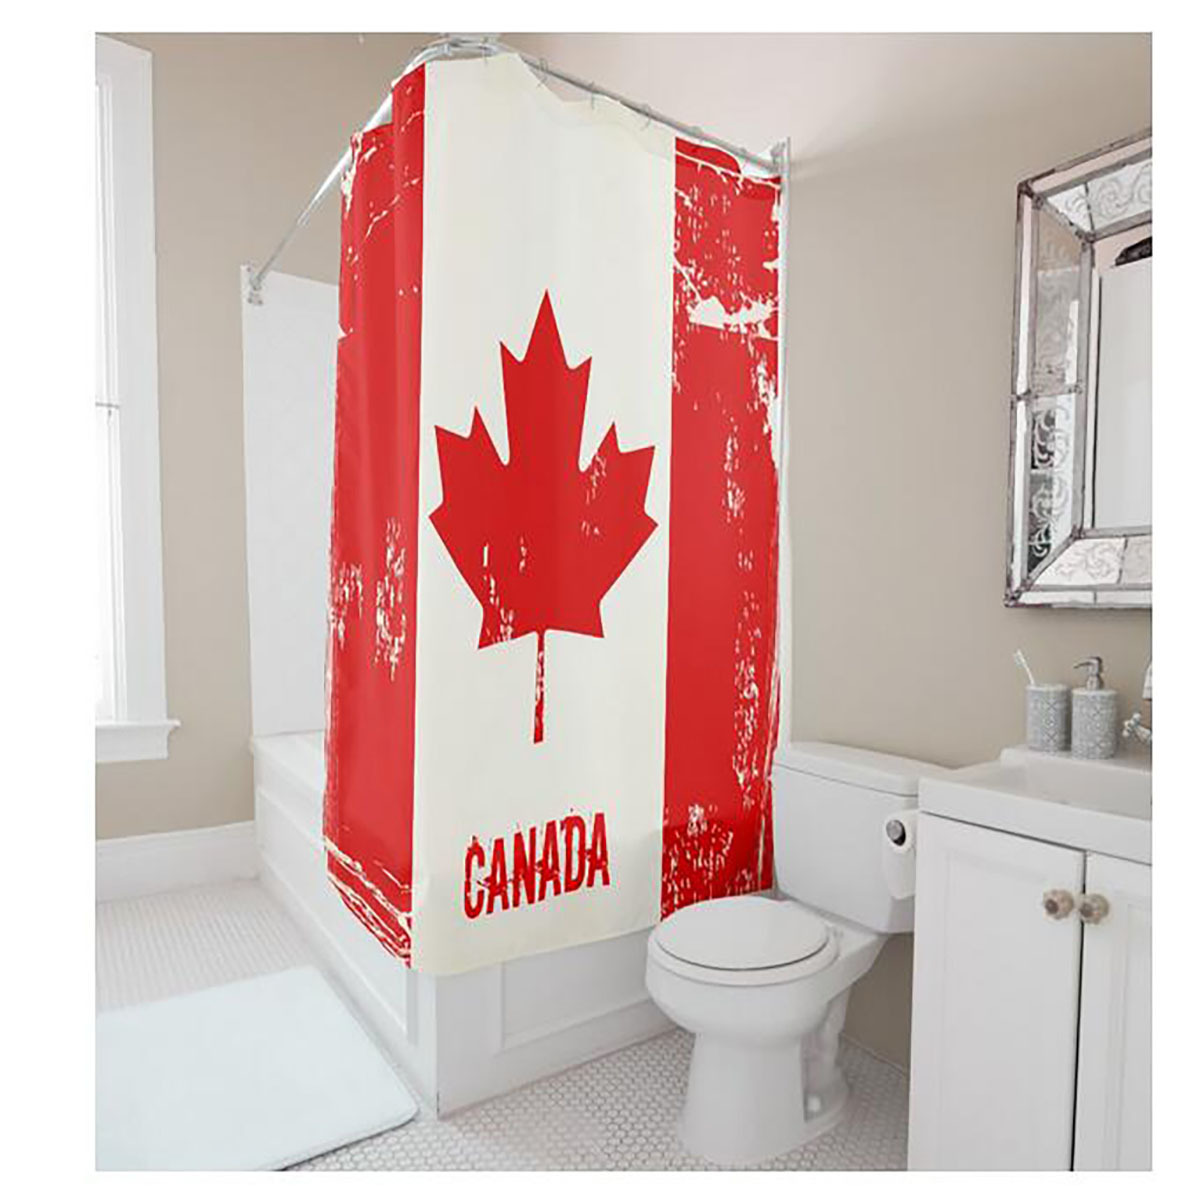 Buy canada shower curtain and get free shipping on AliExpress.com